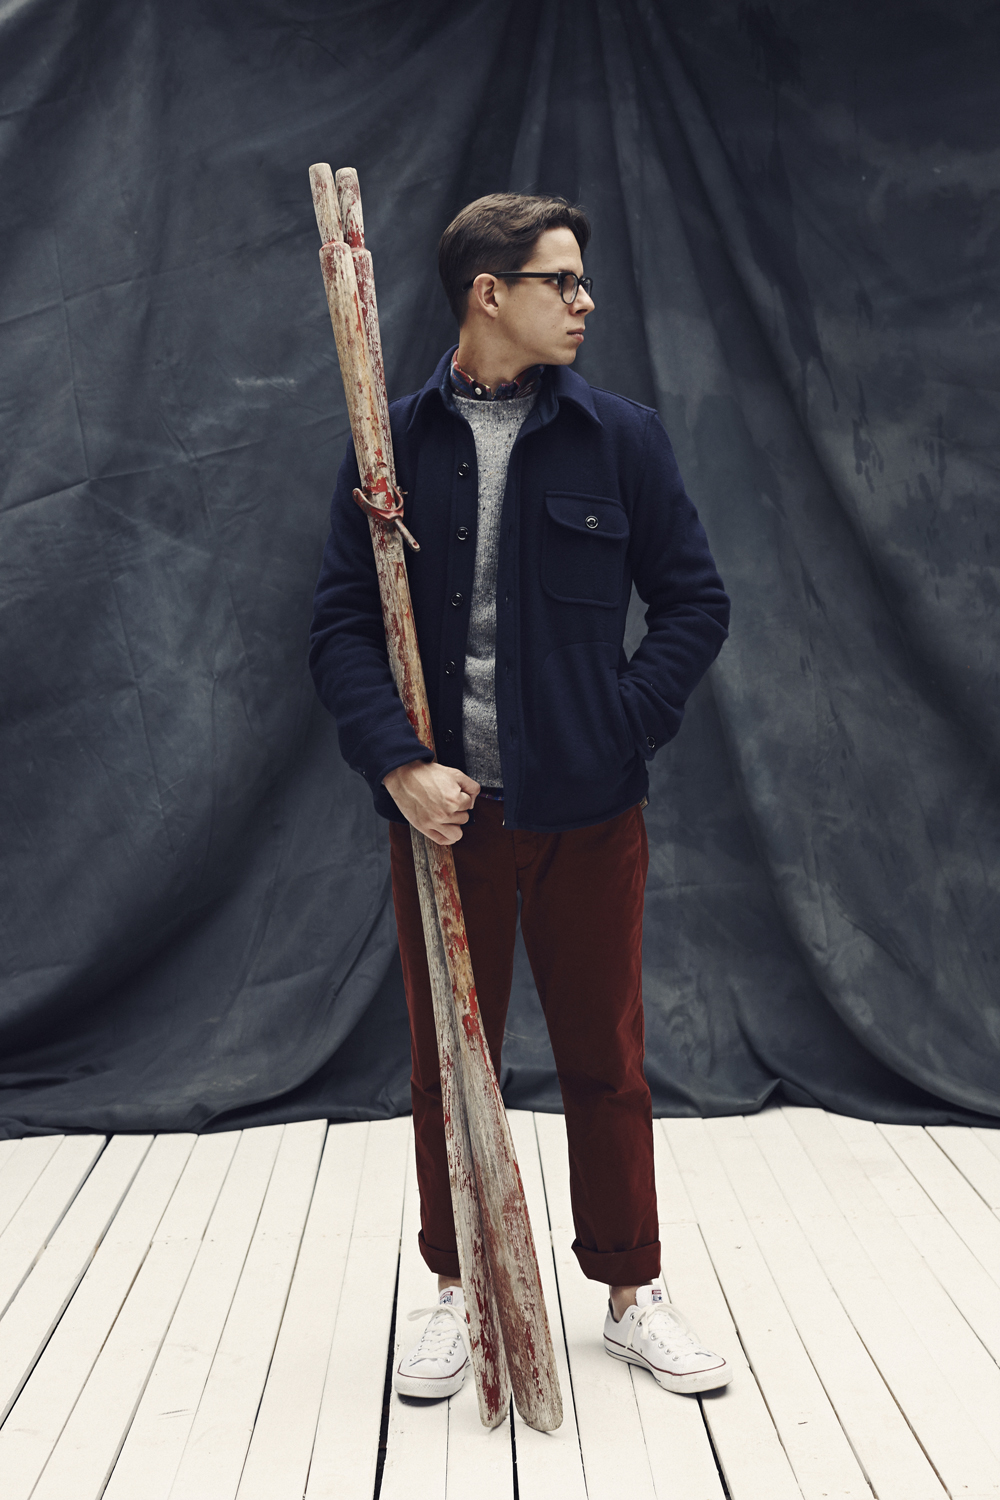 indigo & cotton charleston, sc fall/winter 2013 look book